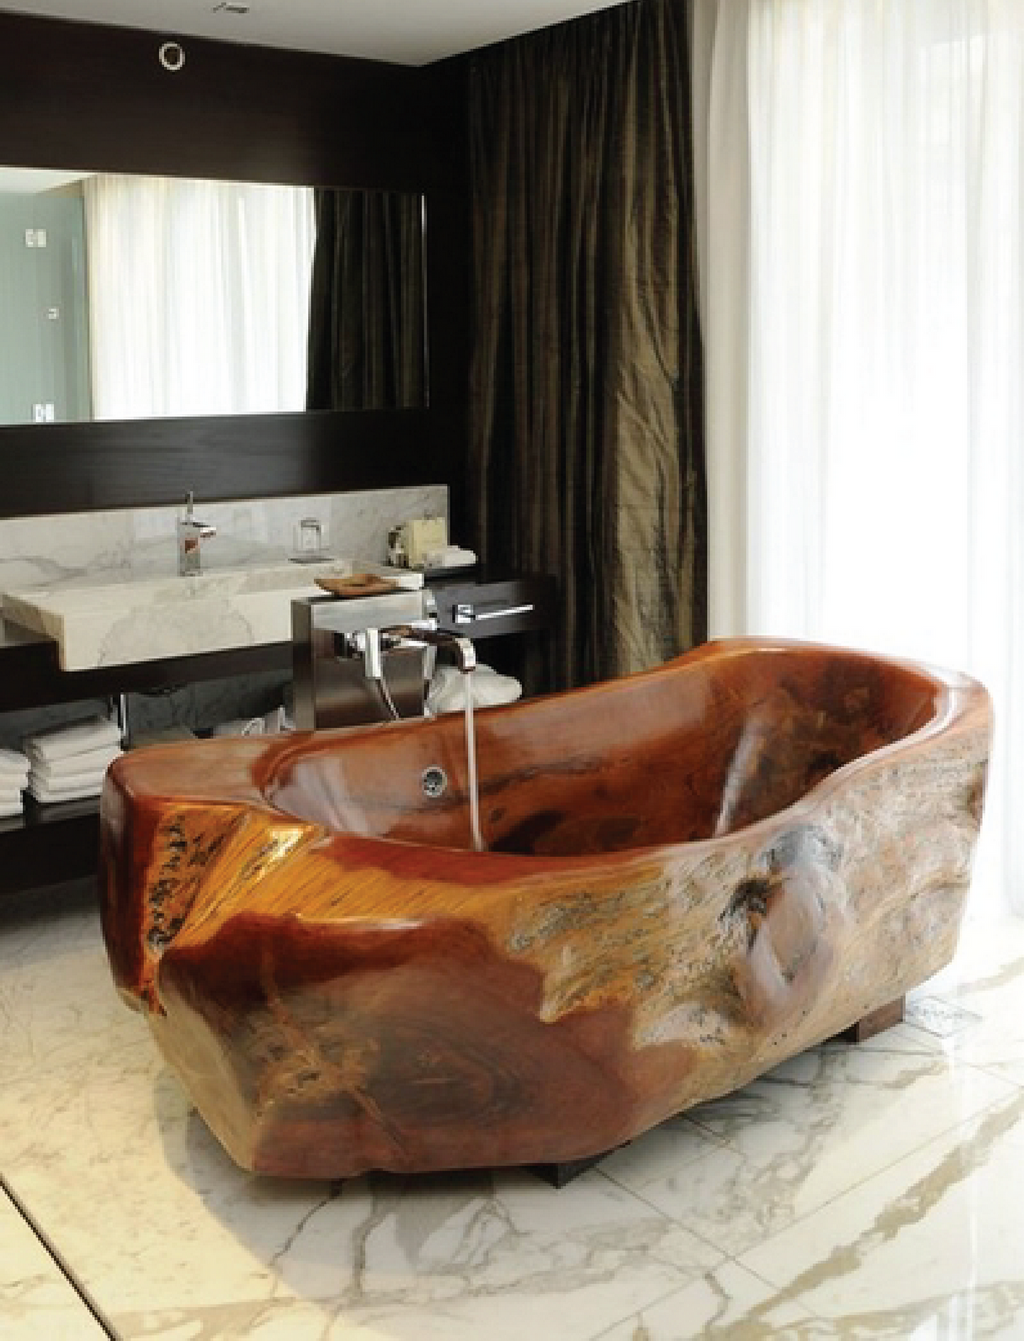 Sara Russell Wooden Bathtub How To Build A Wooden Bathtub Stool